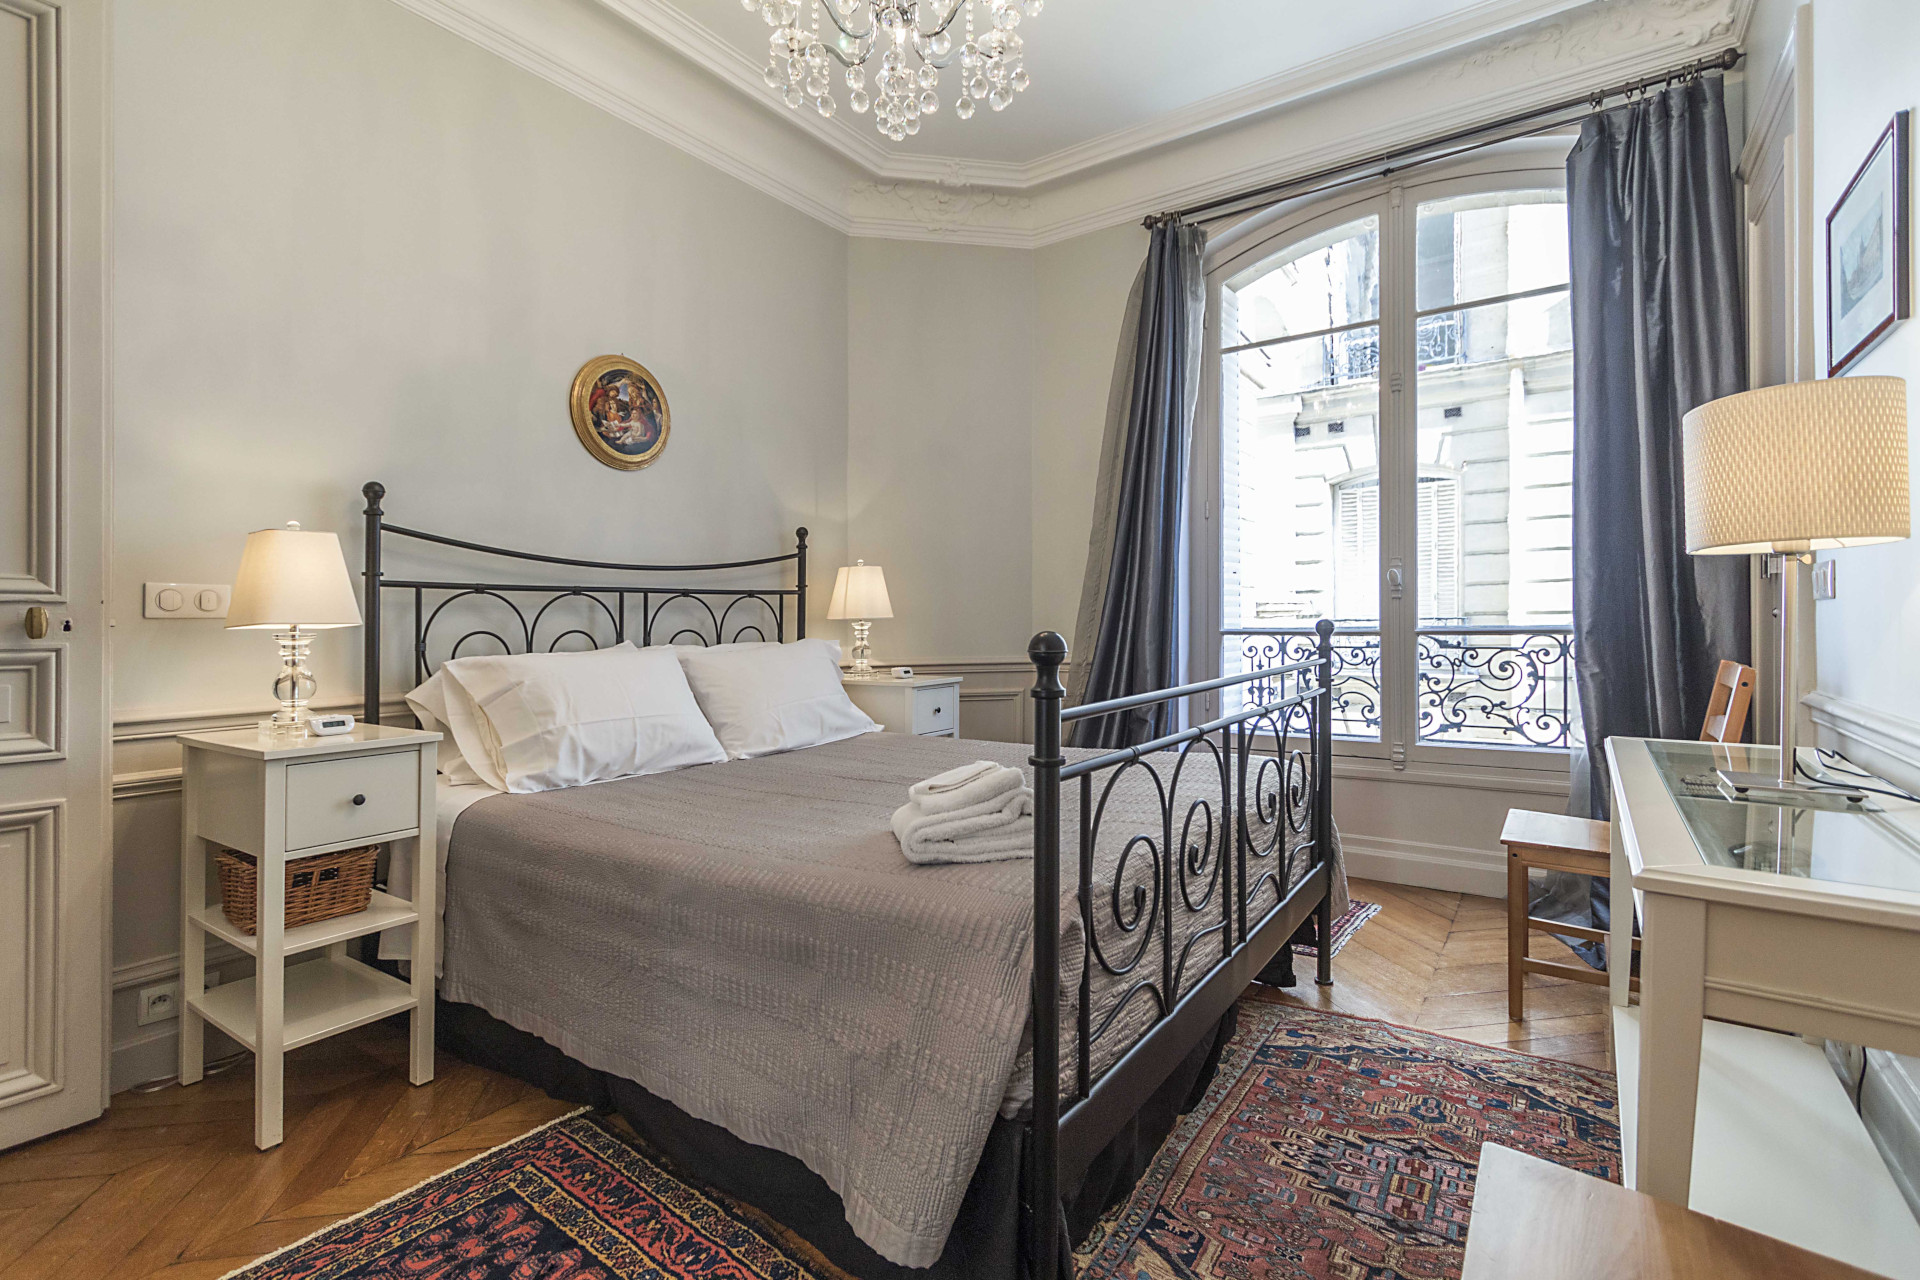 Wonderful bedroom space to rest in the Roannaise vacation rental by Paris Perfect